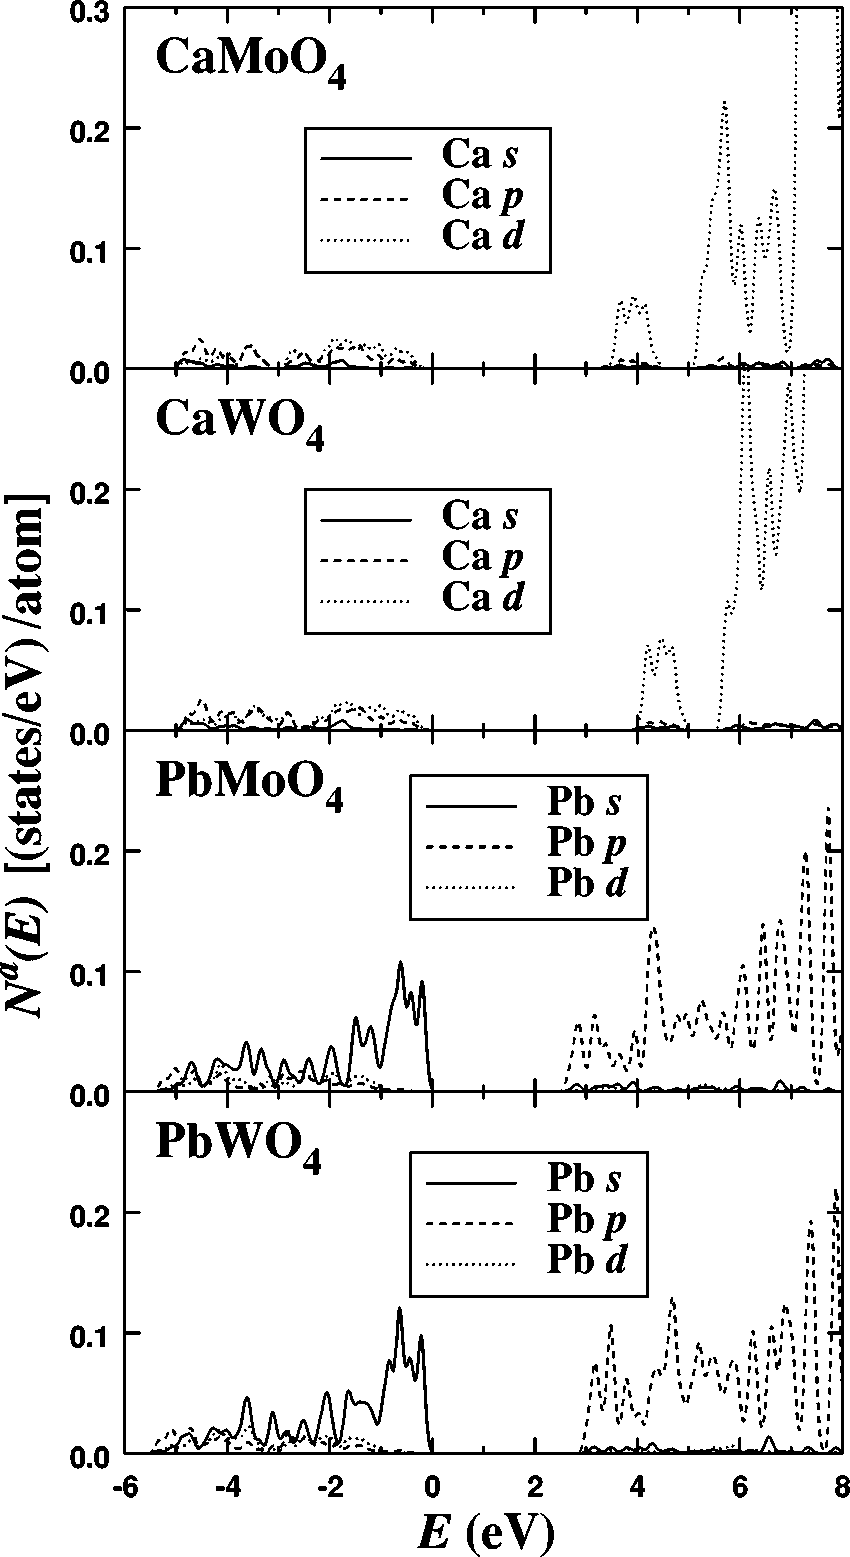 medium resolution of ca and pb atomic orbital partial densities of states for the four abo 4 scheelite